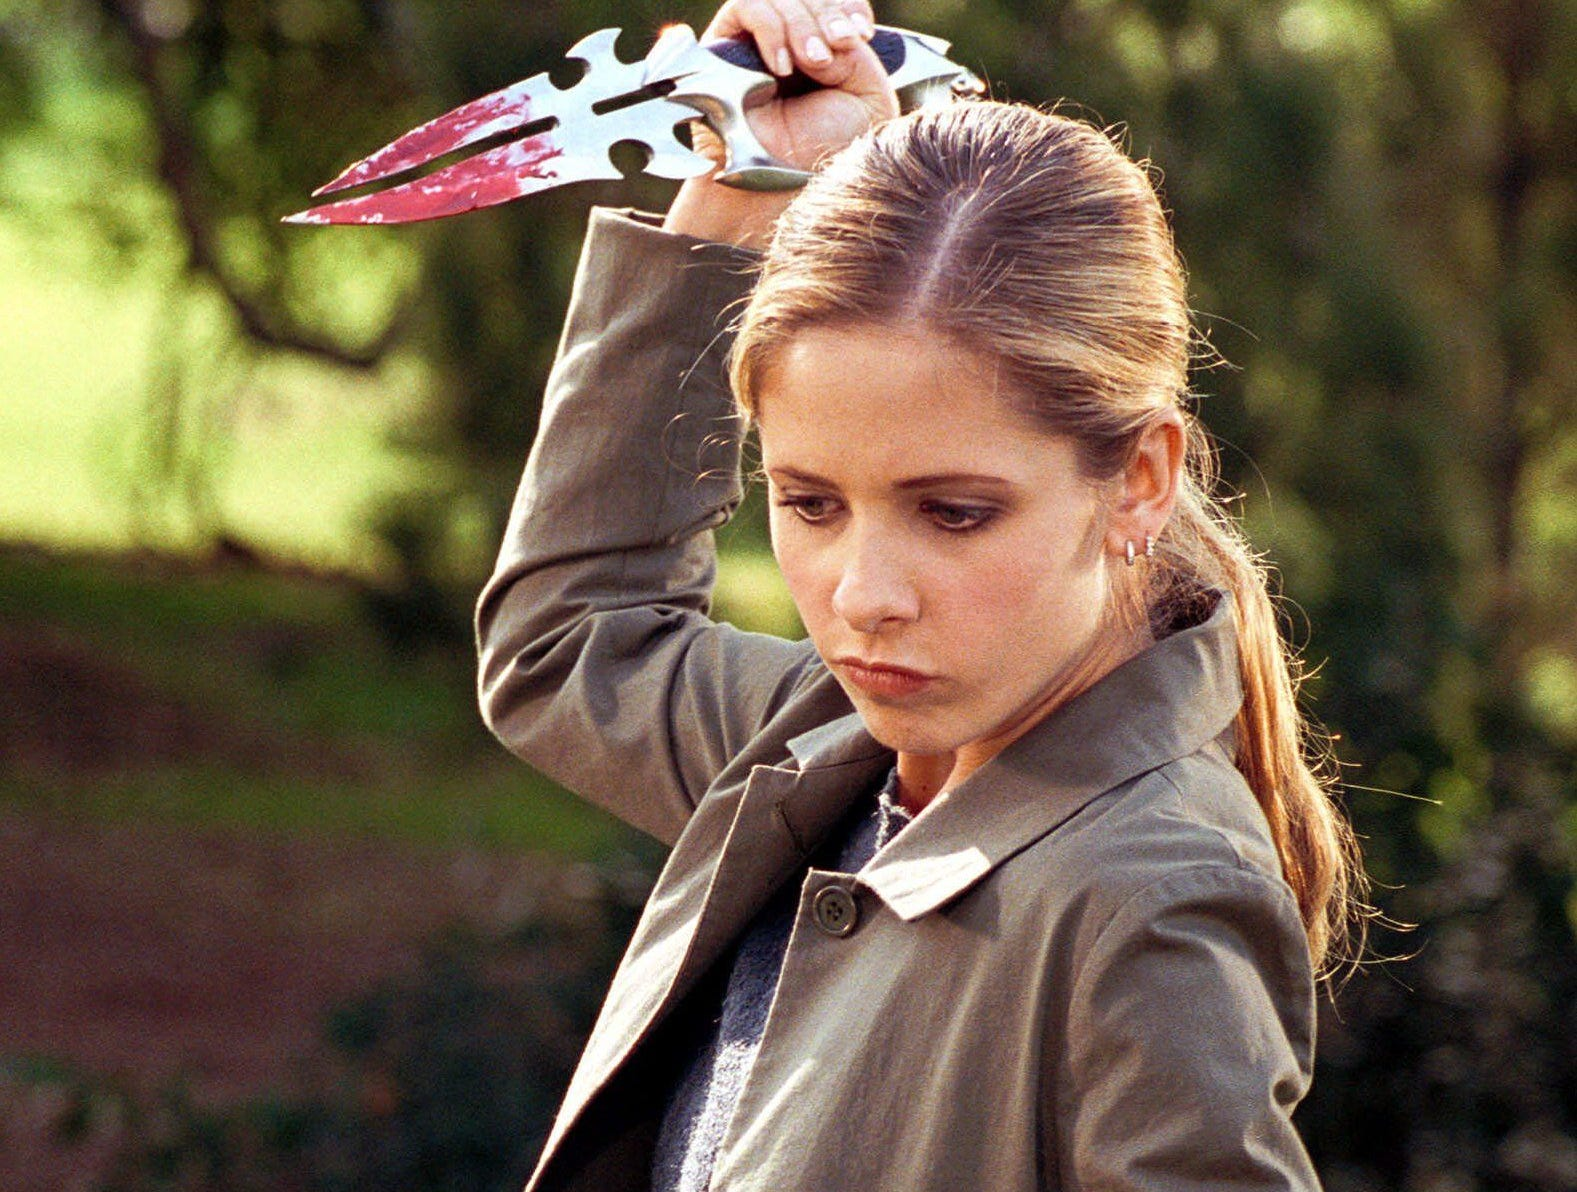 """Buffy the Vampire Slayer,"" which lasted for seven seasons on the UPN and WB networks, followed high school student Buffy Summers (Sarah Michelle Gellar) who is destined to be a vampire killer."